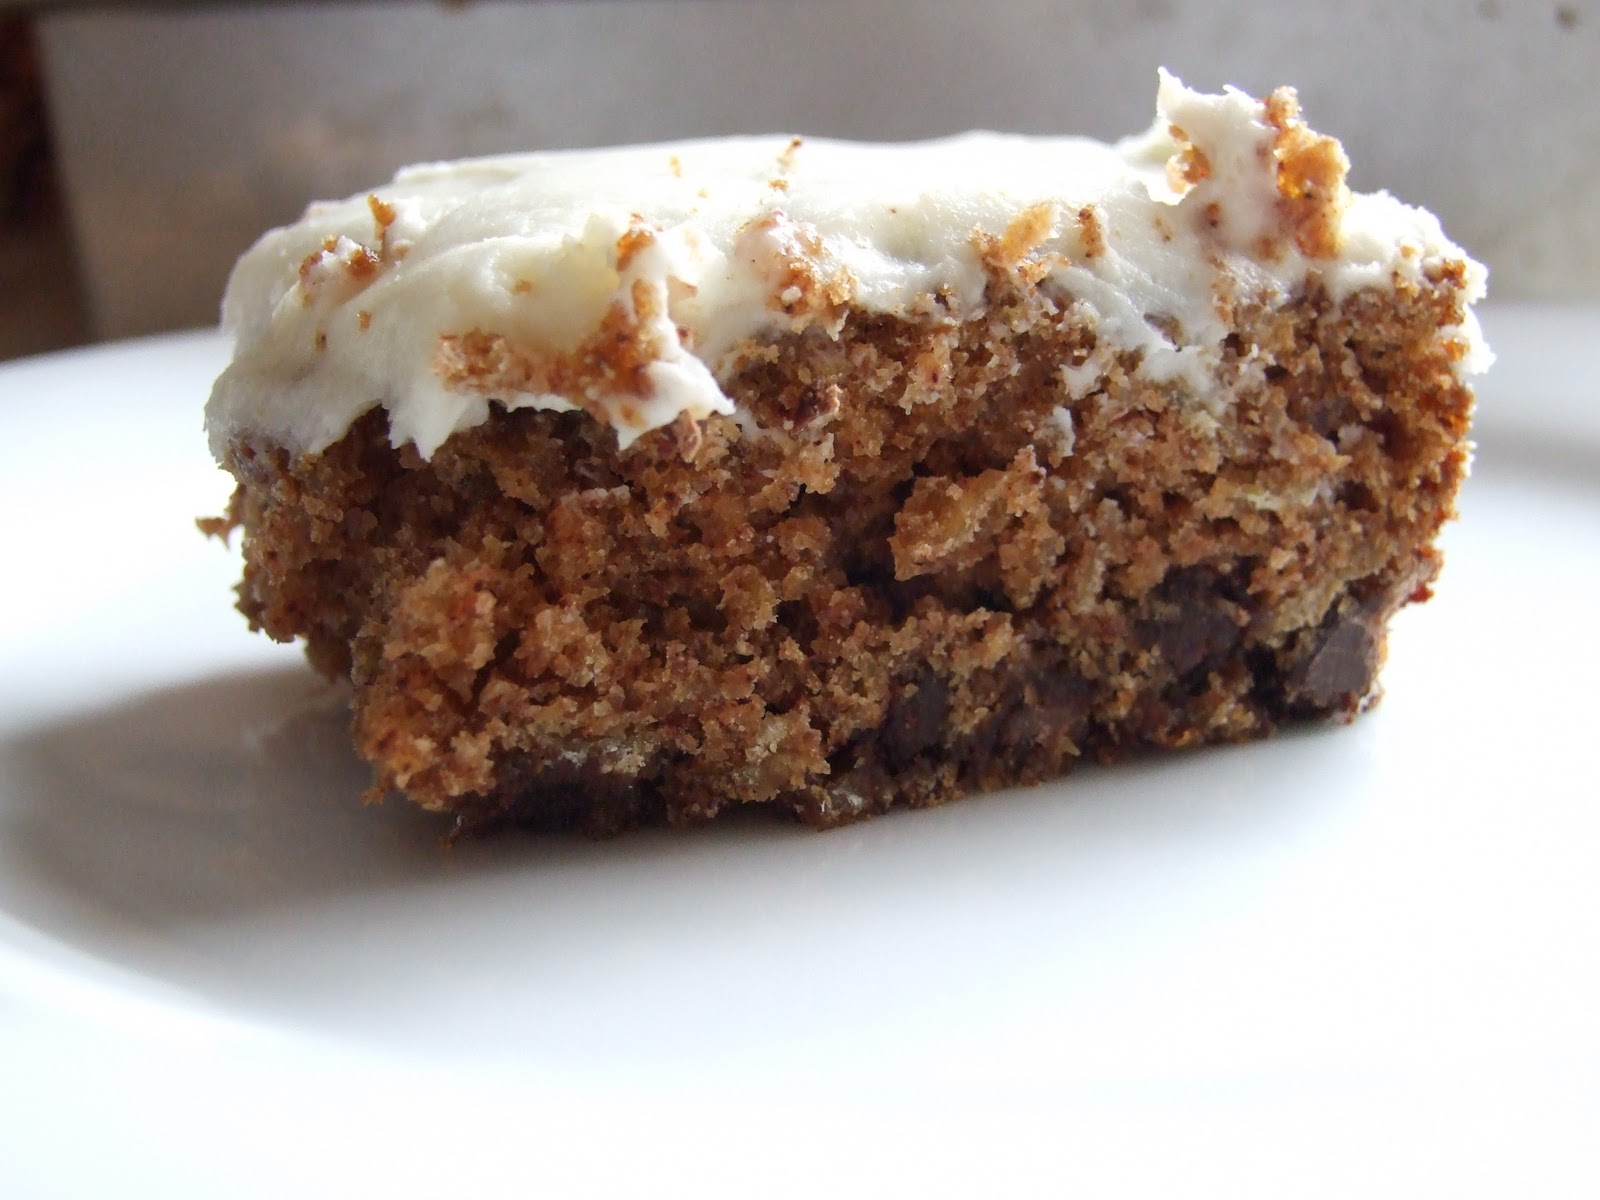 ... oatmeal chocolate chip cookie chocolate chip oatmeal cake with cream